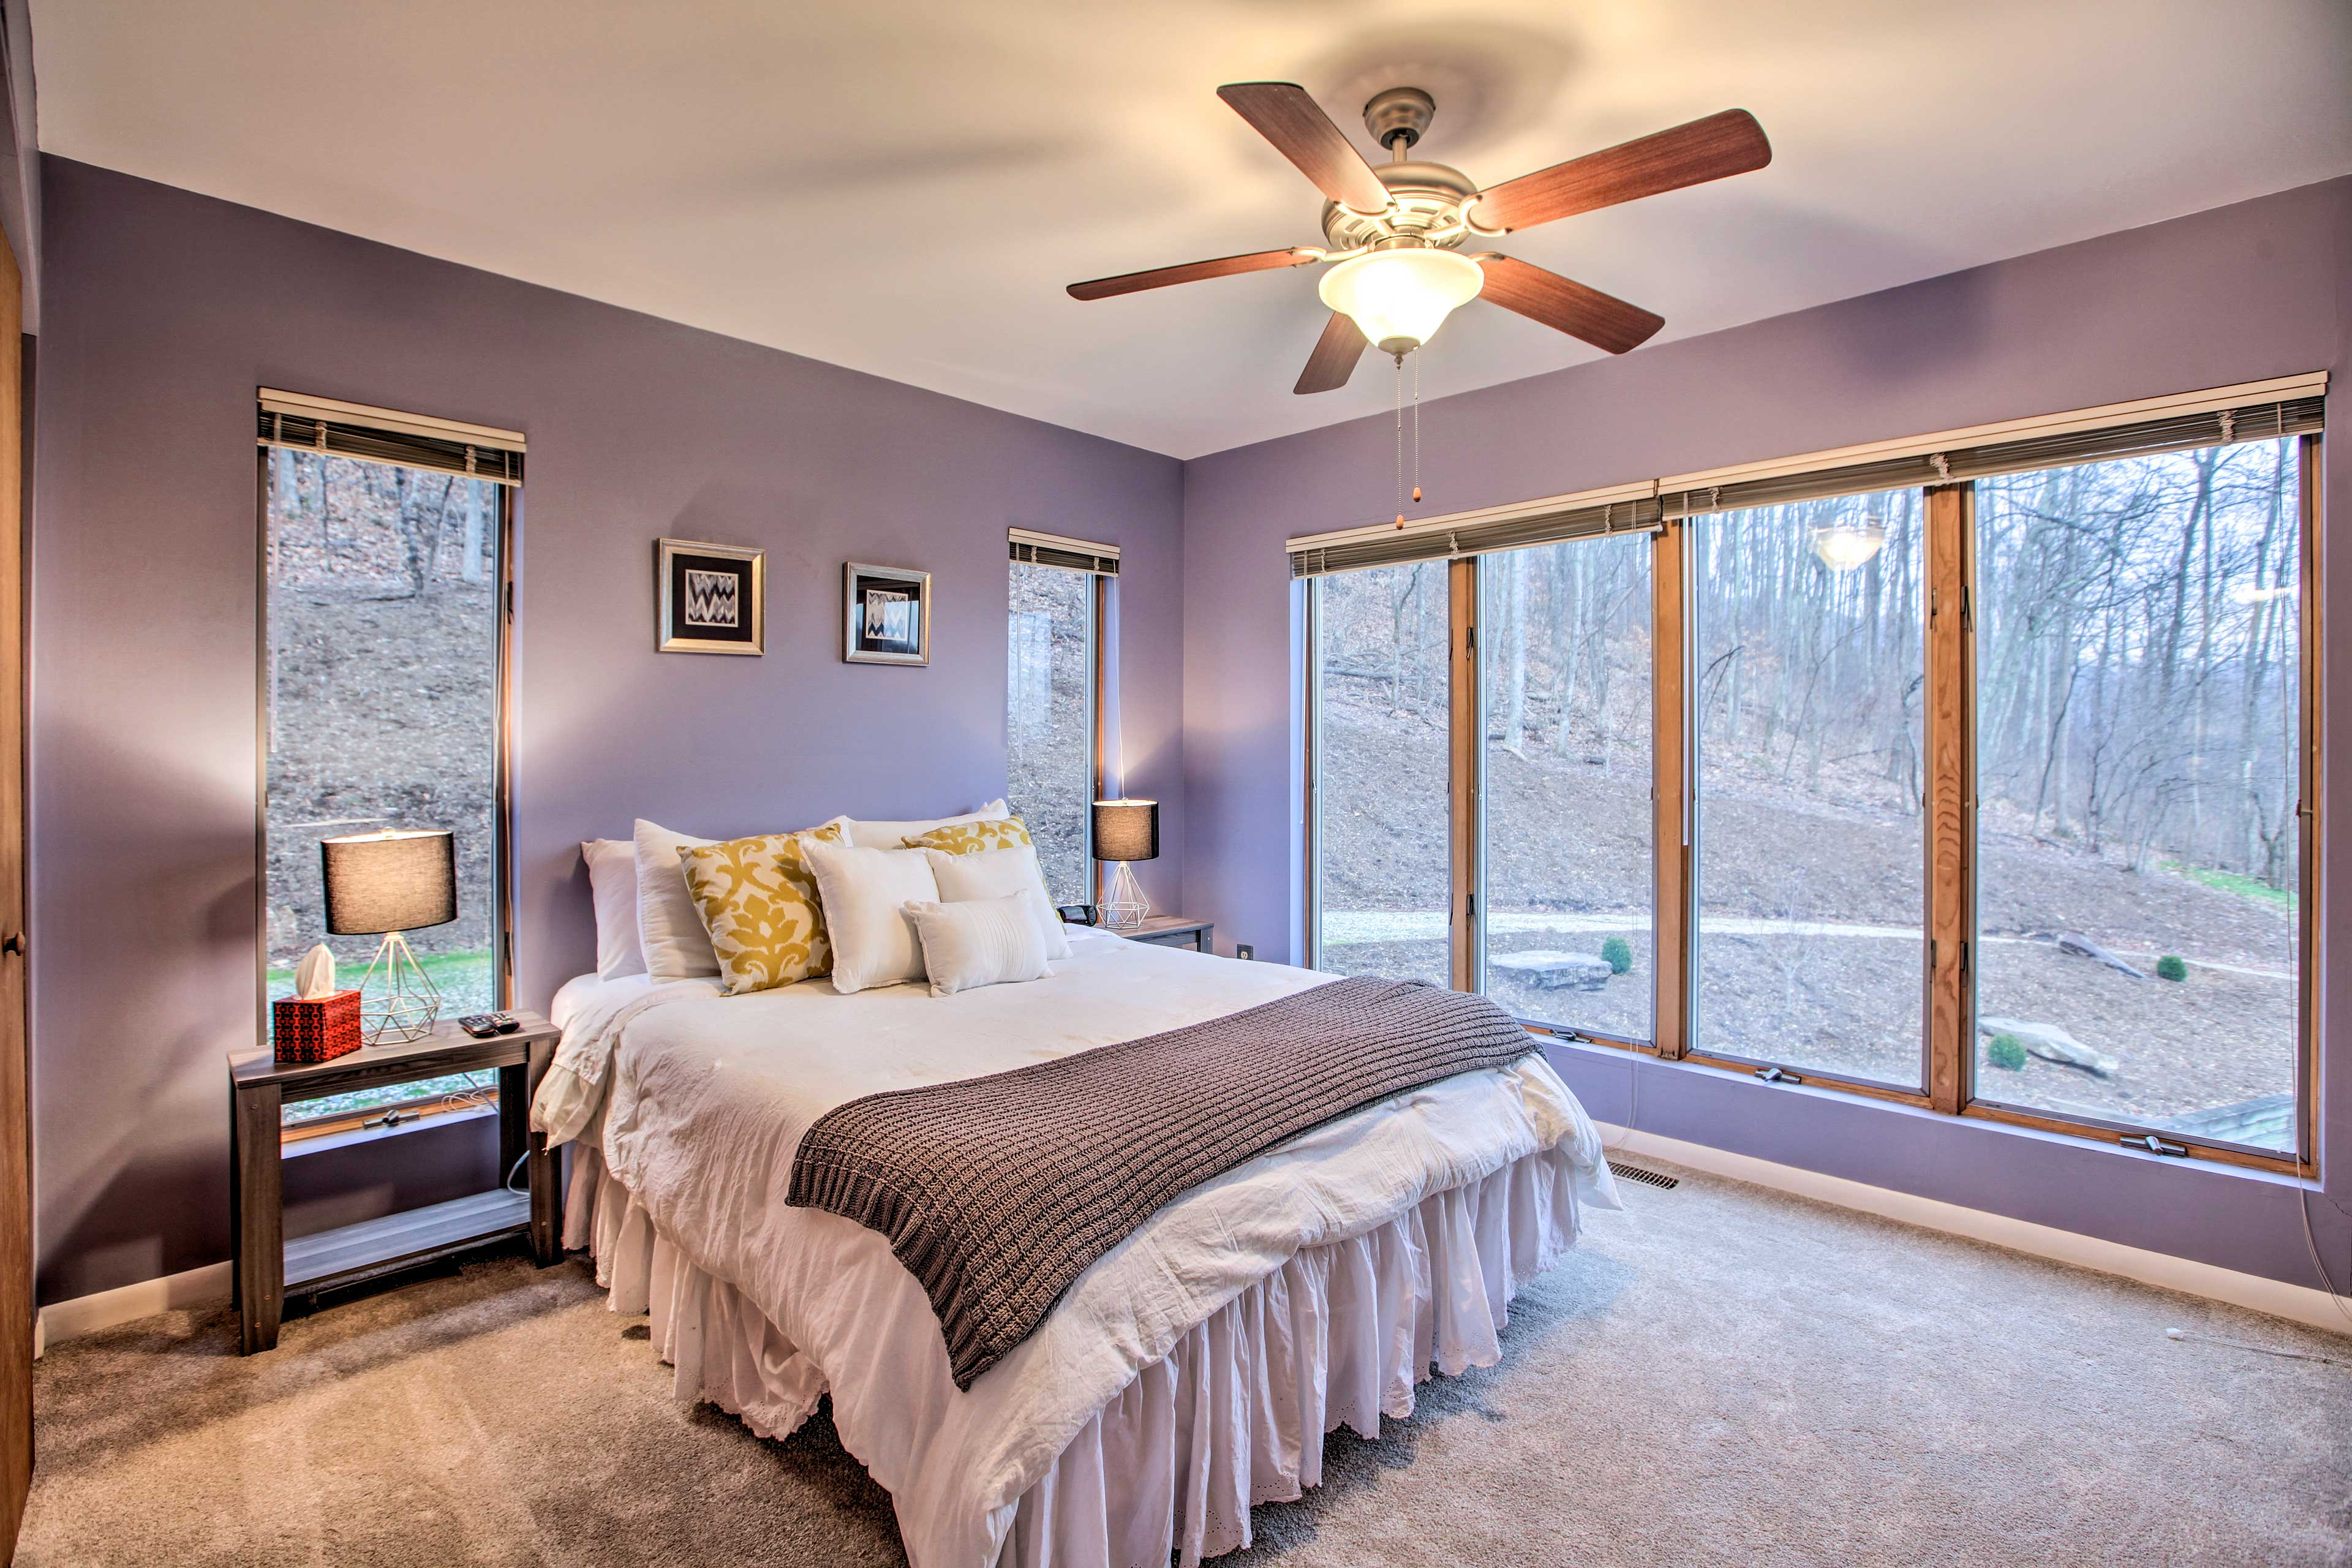 Two more guests can call this bedroom home.